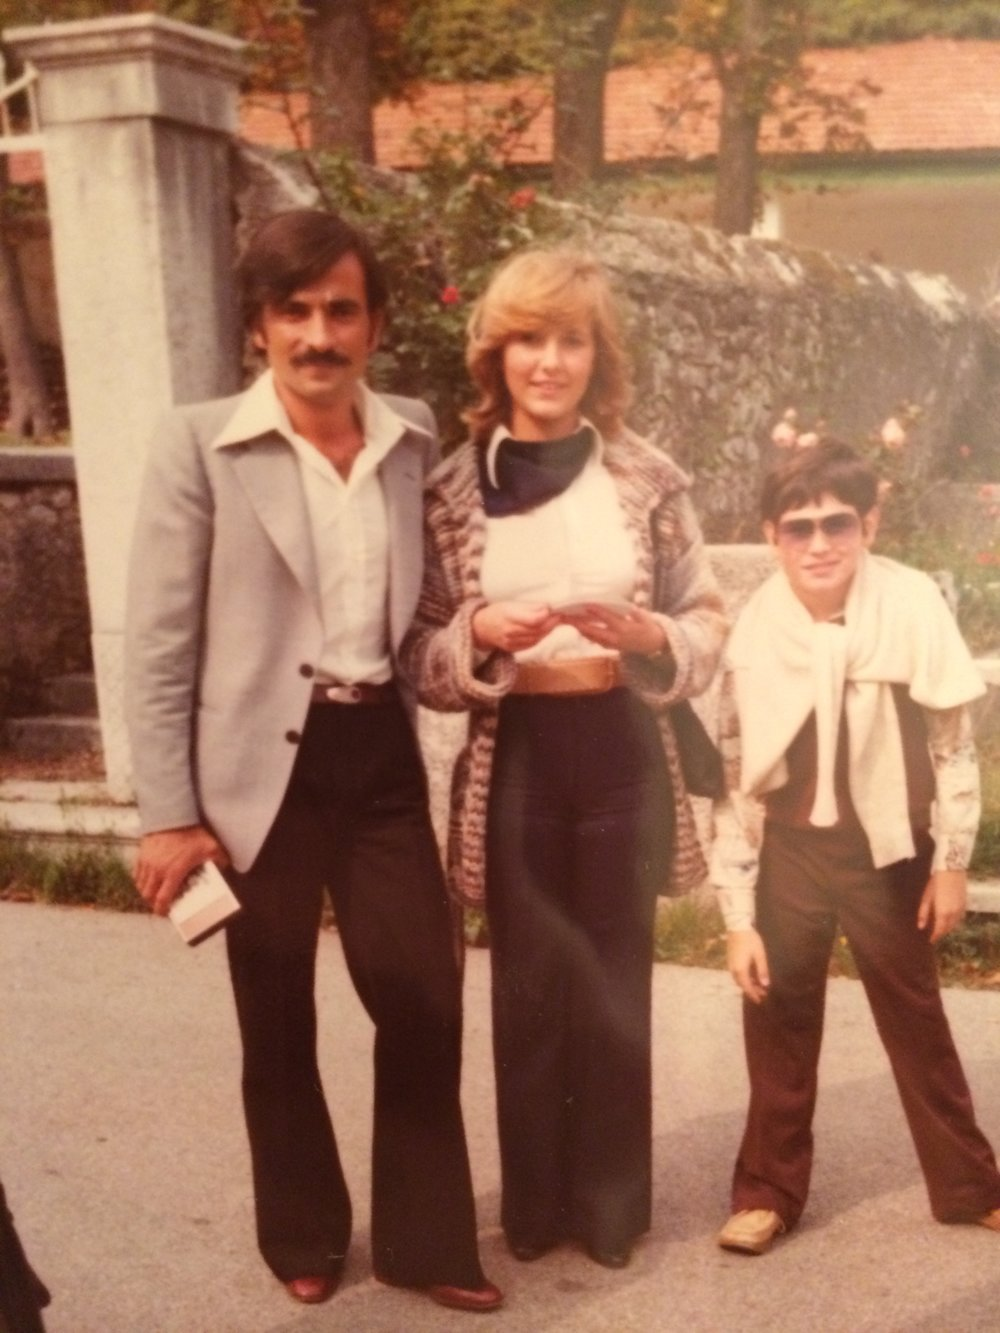 My uncle, and aunt and cousin 70s